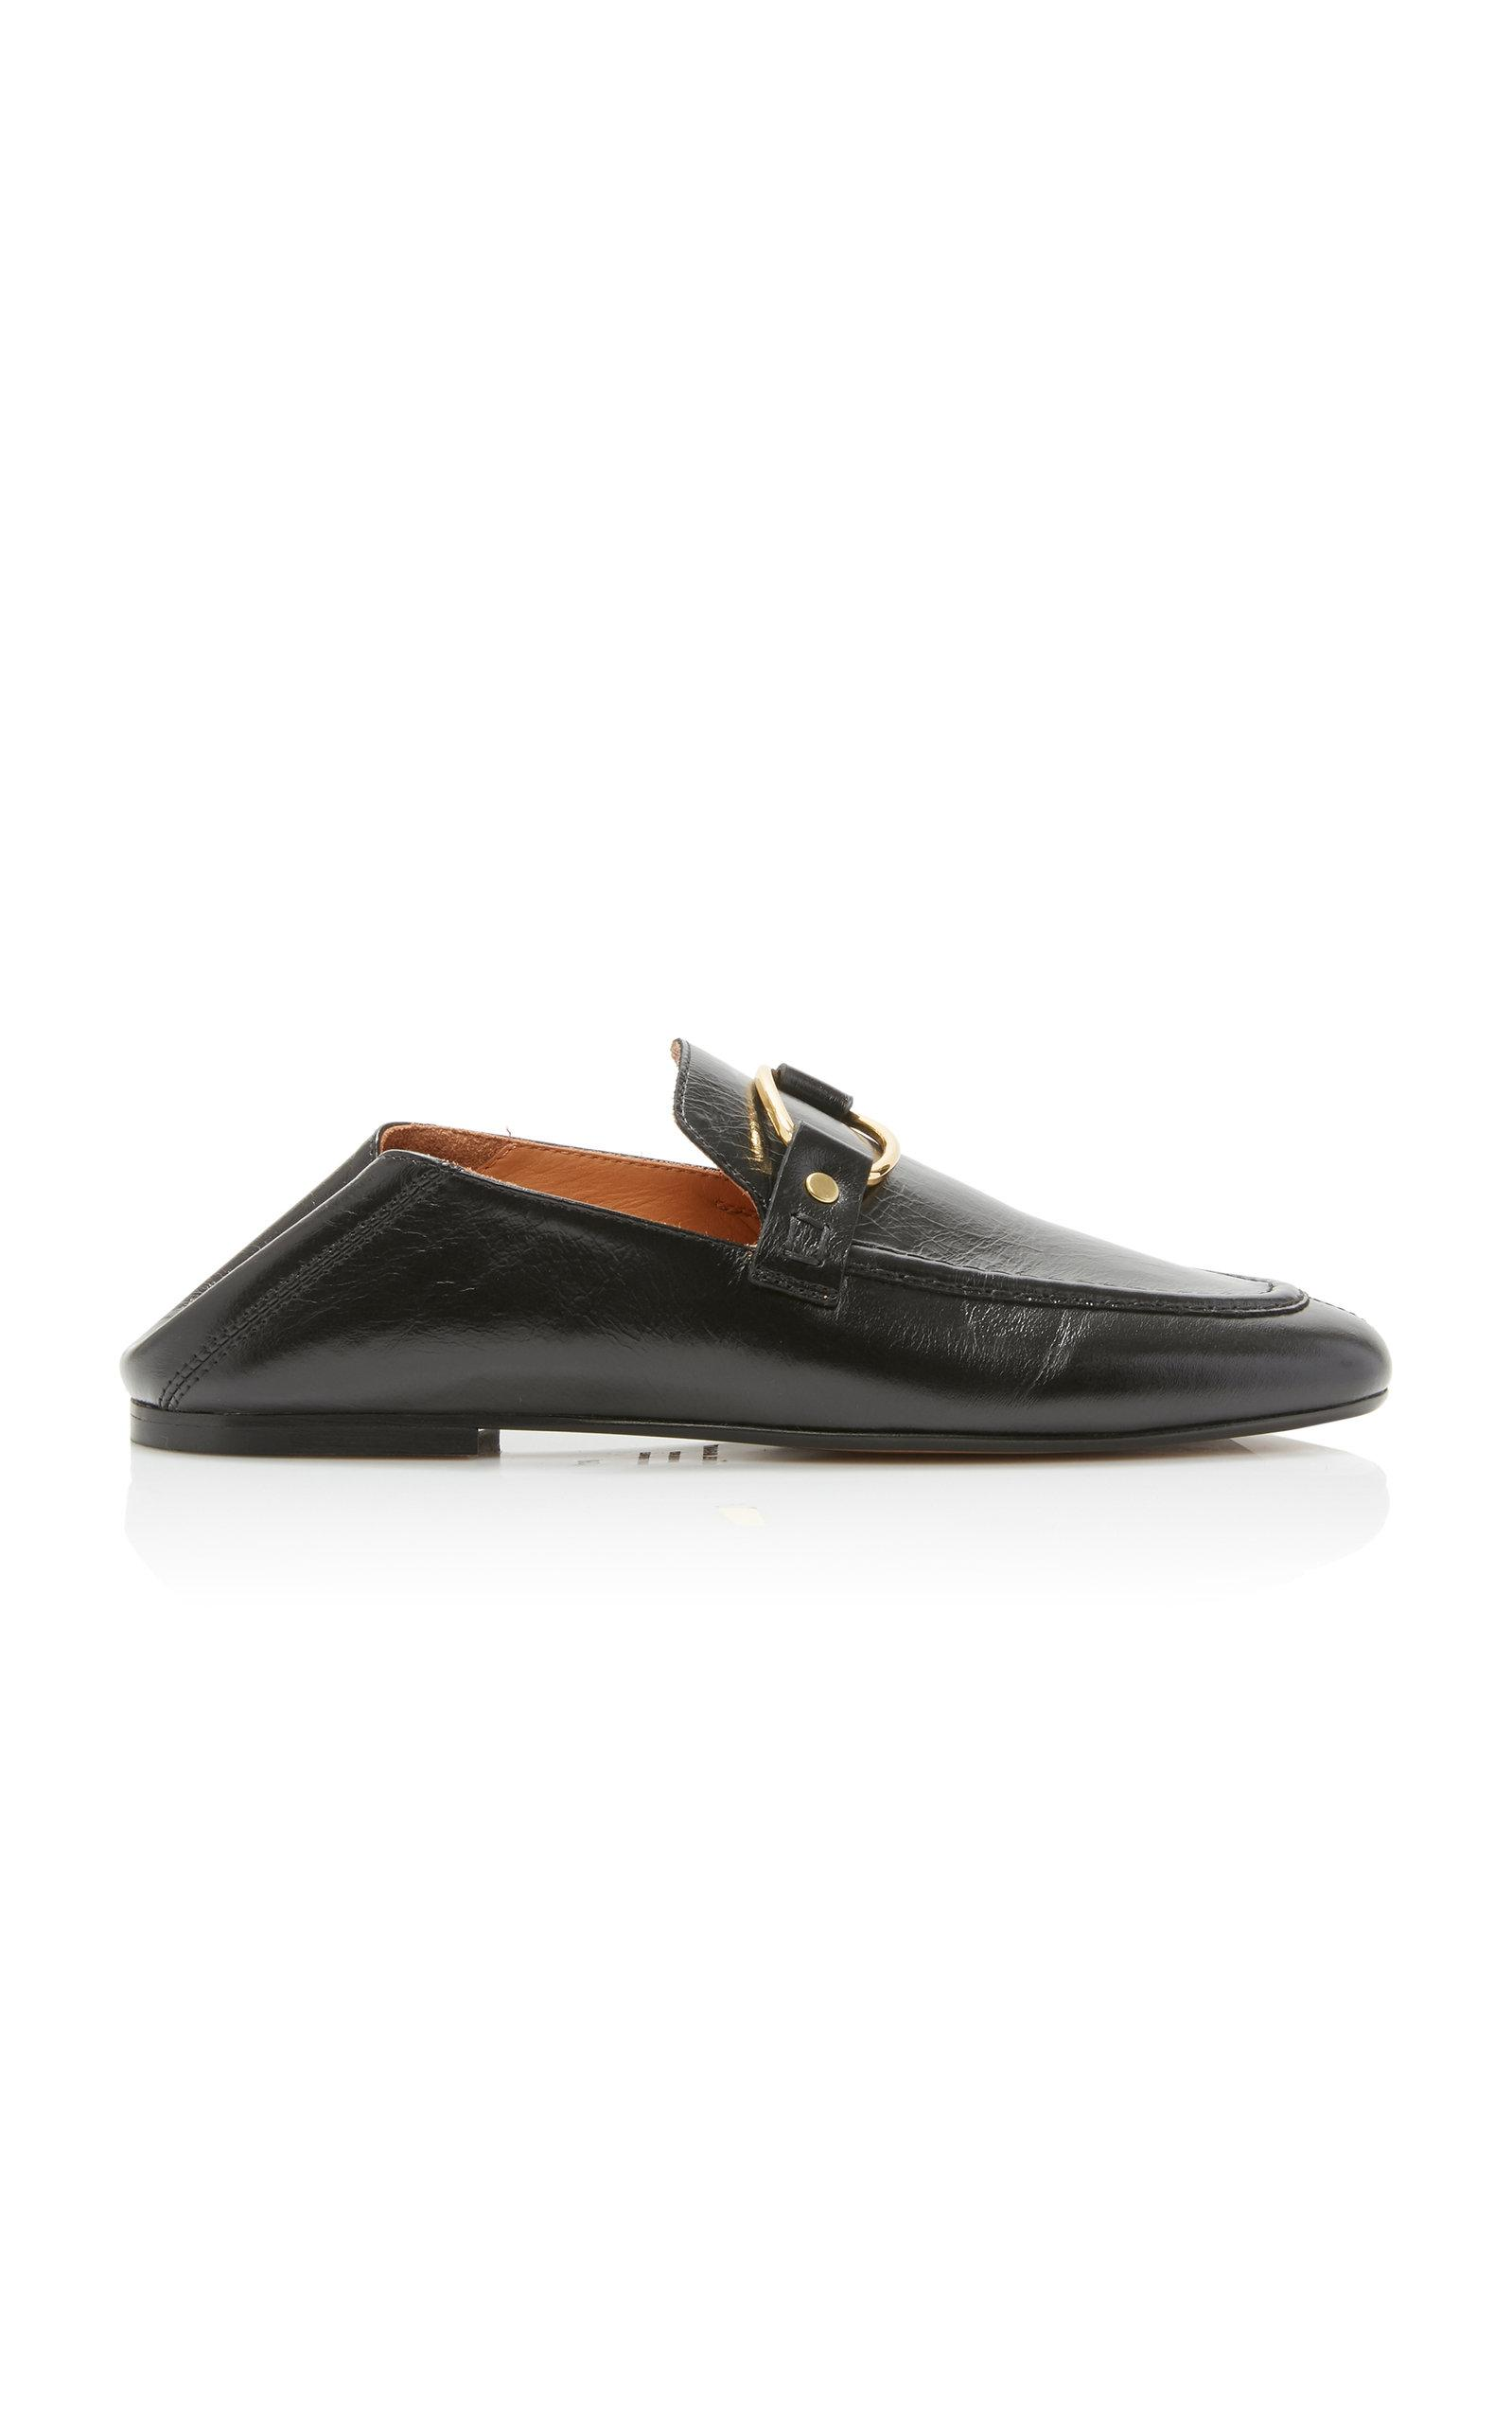 7e86346b5e0 Isabel Marant Ferlyn Loafers in Black - Lyst